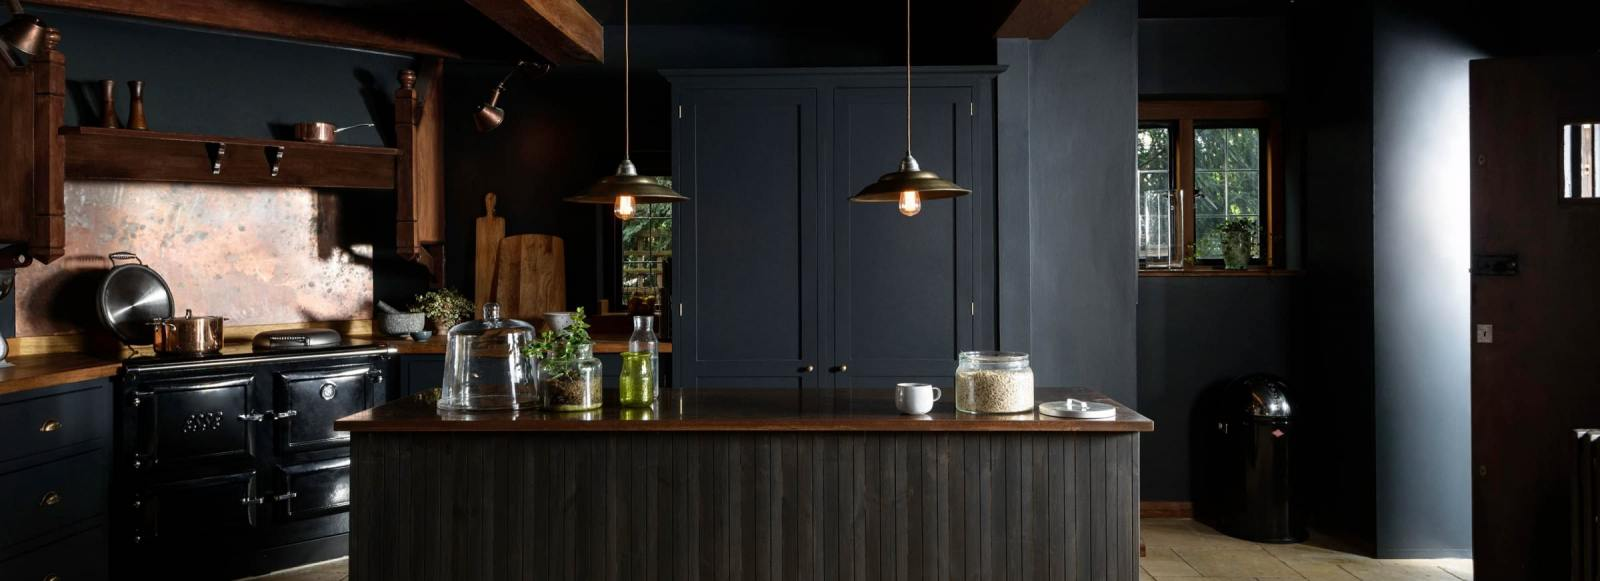 Bespoke Kitchens, Bathrooms and Interiors by deVOL photo 1